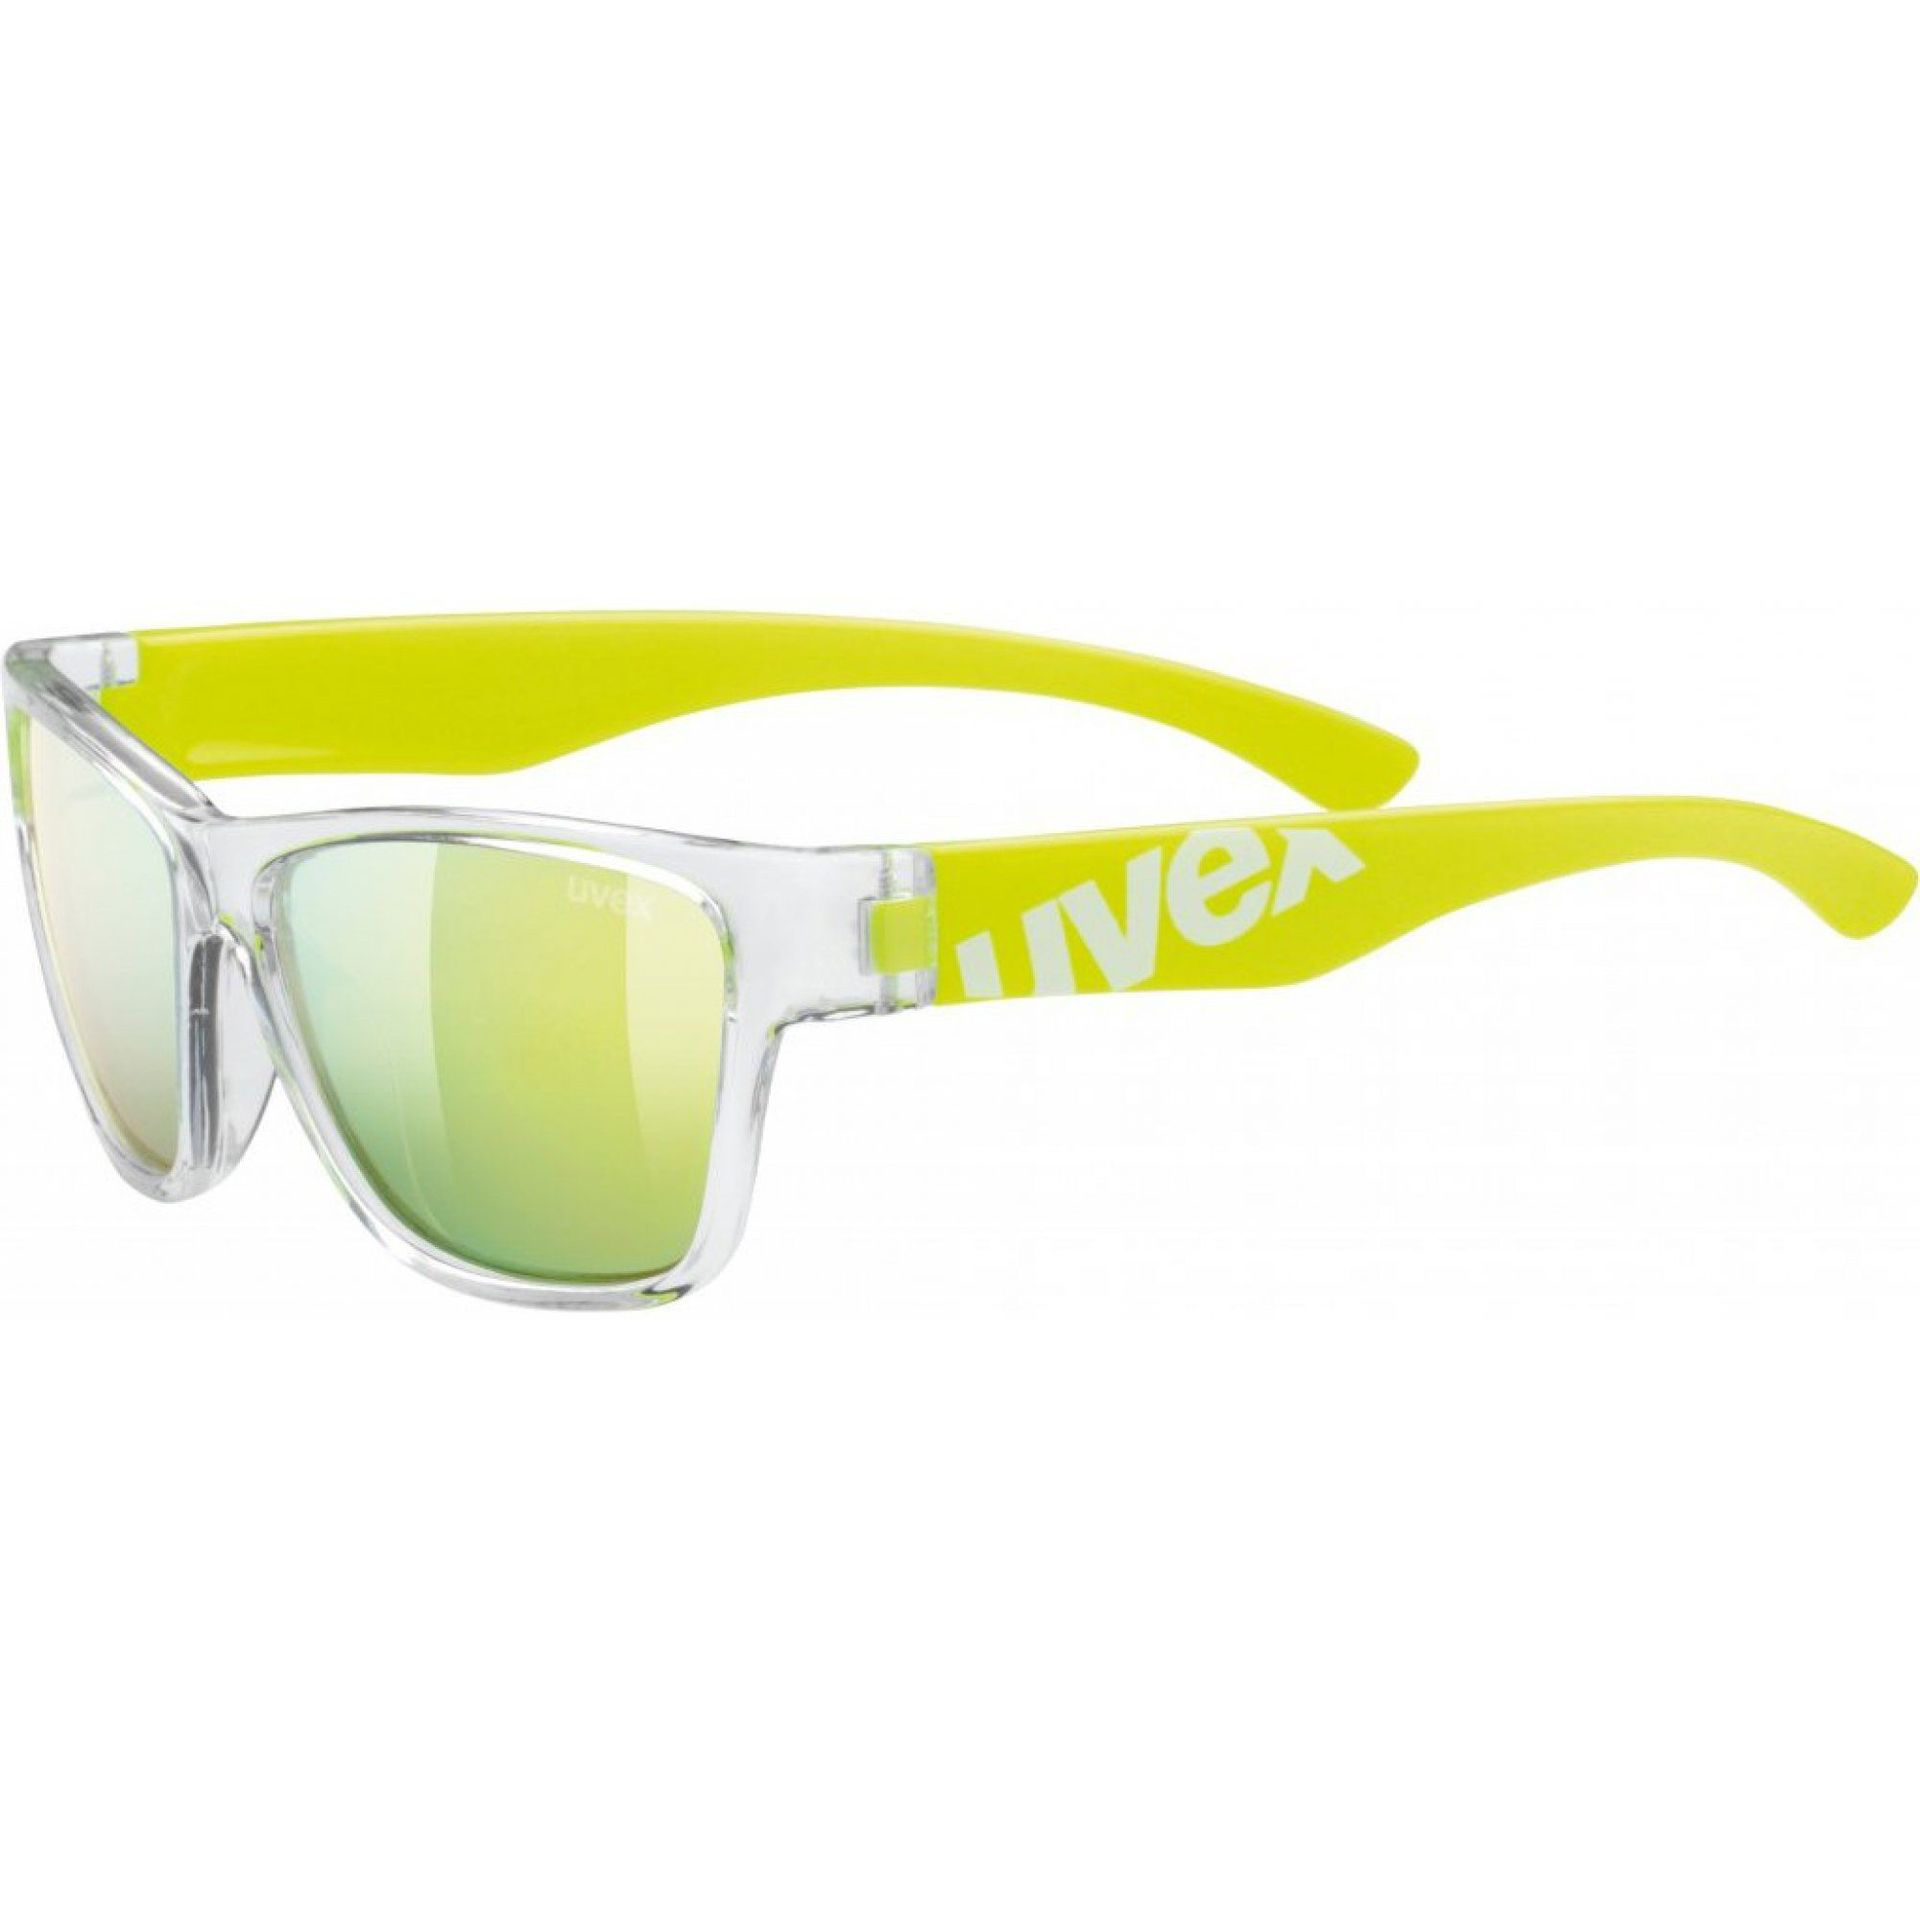 OKULARY UVEX SPORTSTYLE 508 CLEAR YELLOW